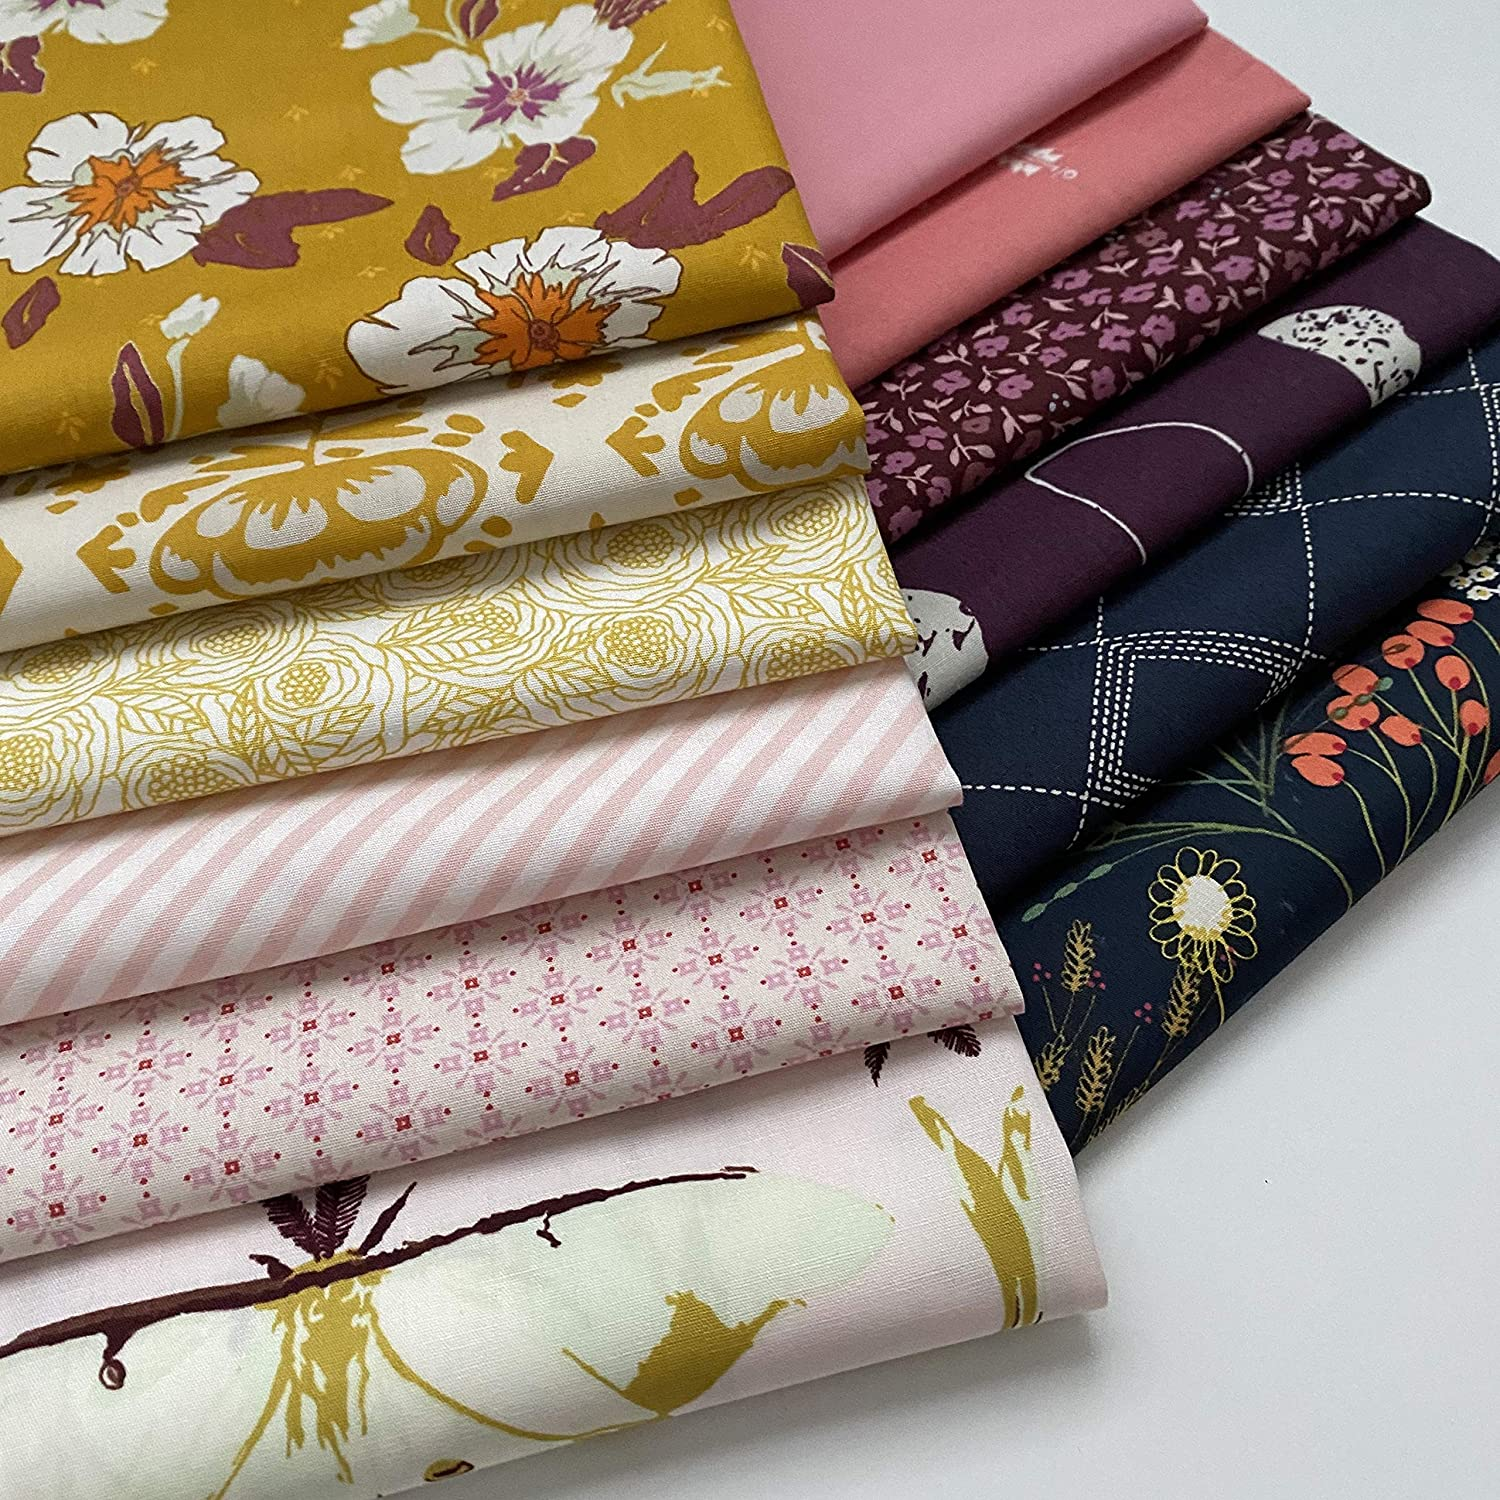 Neon lights fat quarters fabric bundle of 16 assorted fabrics Bright coloring great quality